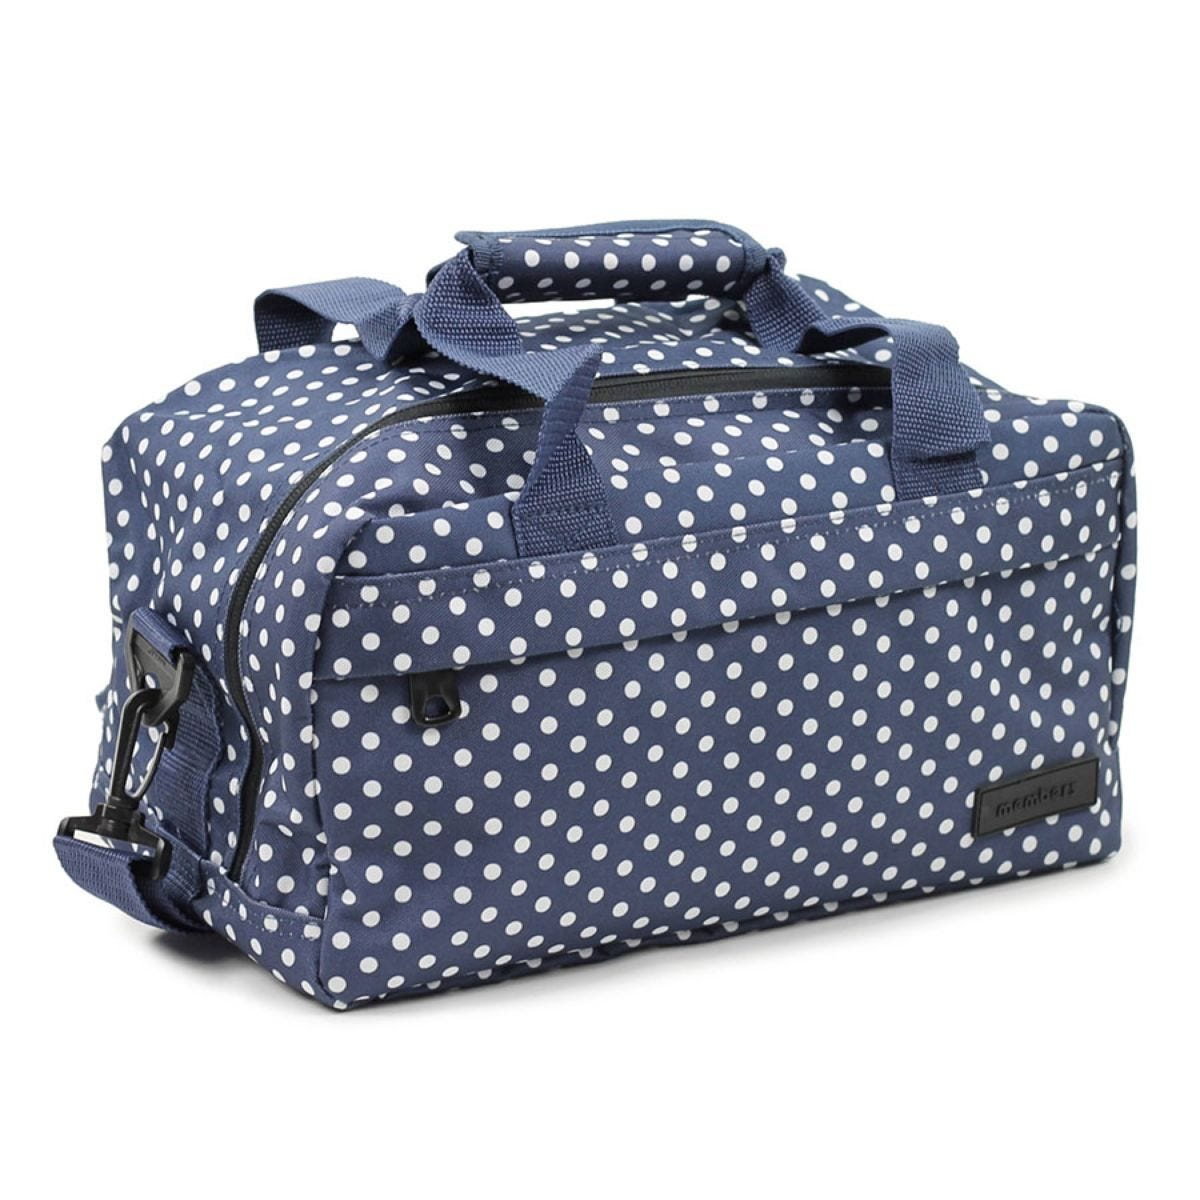 Members by Rock Luggage Essential Under-Seat Hand Luggage Bag – Navy Polka Dots